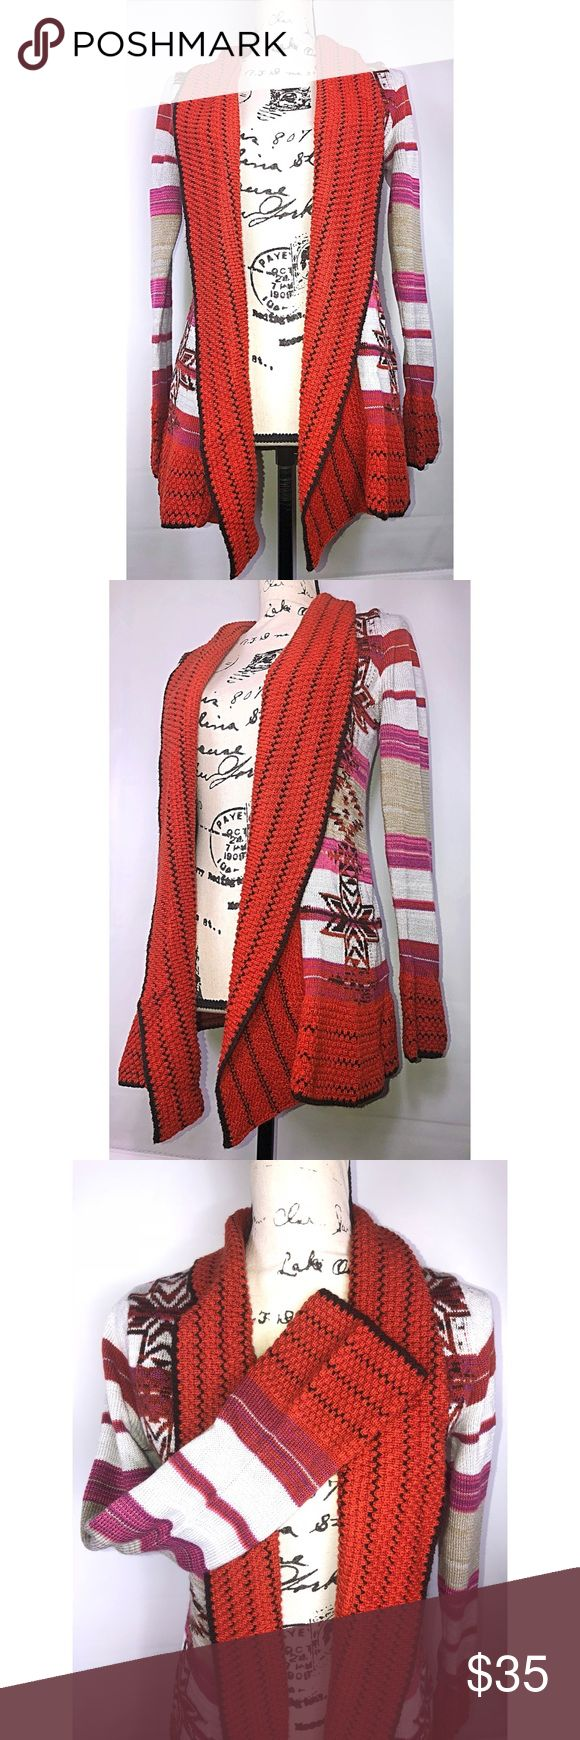 BCBG Maxima Burnt Orange Aztec Print Cardigan BCBG Maxima Burnt Orange Aztec Print Cardigan Sweater.  Size Small. Rusty orange, pink, black, brown, white, etc. Semi-bell contrast cuff.  Handwash, 100% acrylic.  Medium weight, not heavy and bulky.  Discontinued design.  MRSP $160. Welcome to Coco's Closet 👸🏾 Need Measurements? Have questions? ☺️Just comment below 👇🏾Accepting Most Offers ✅ Always willing to negotiate. Bundle your likes for a private offer 📦☺️ BCBGMaxAzria Sweaters…